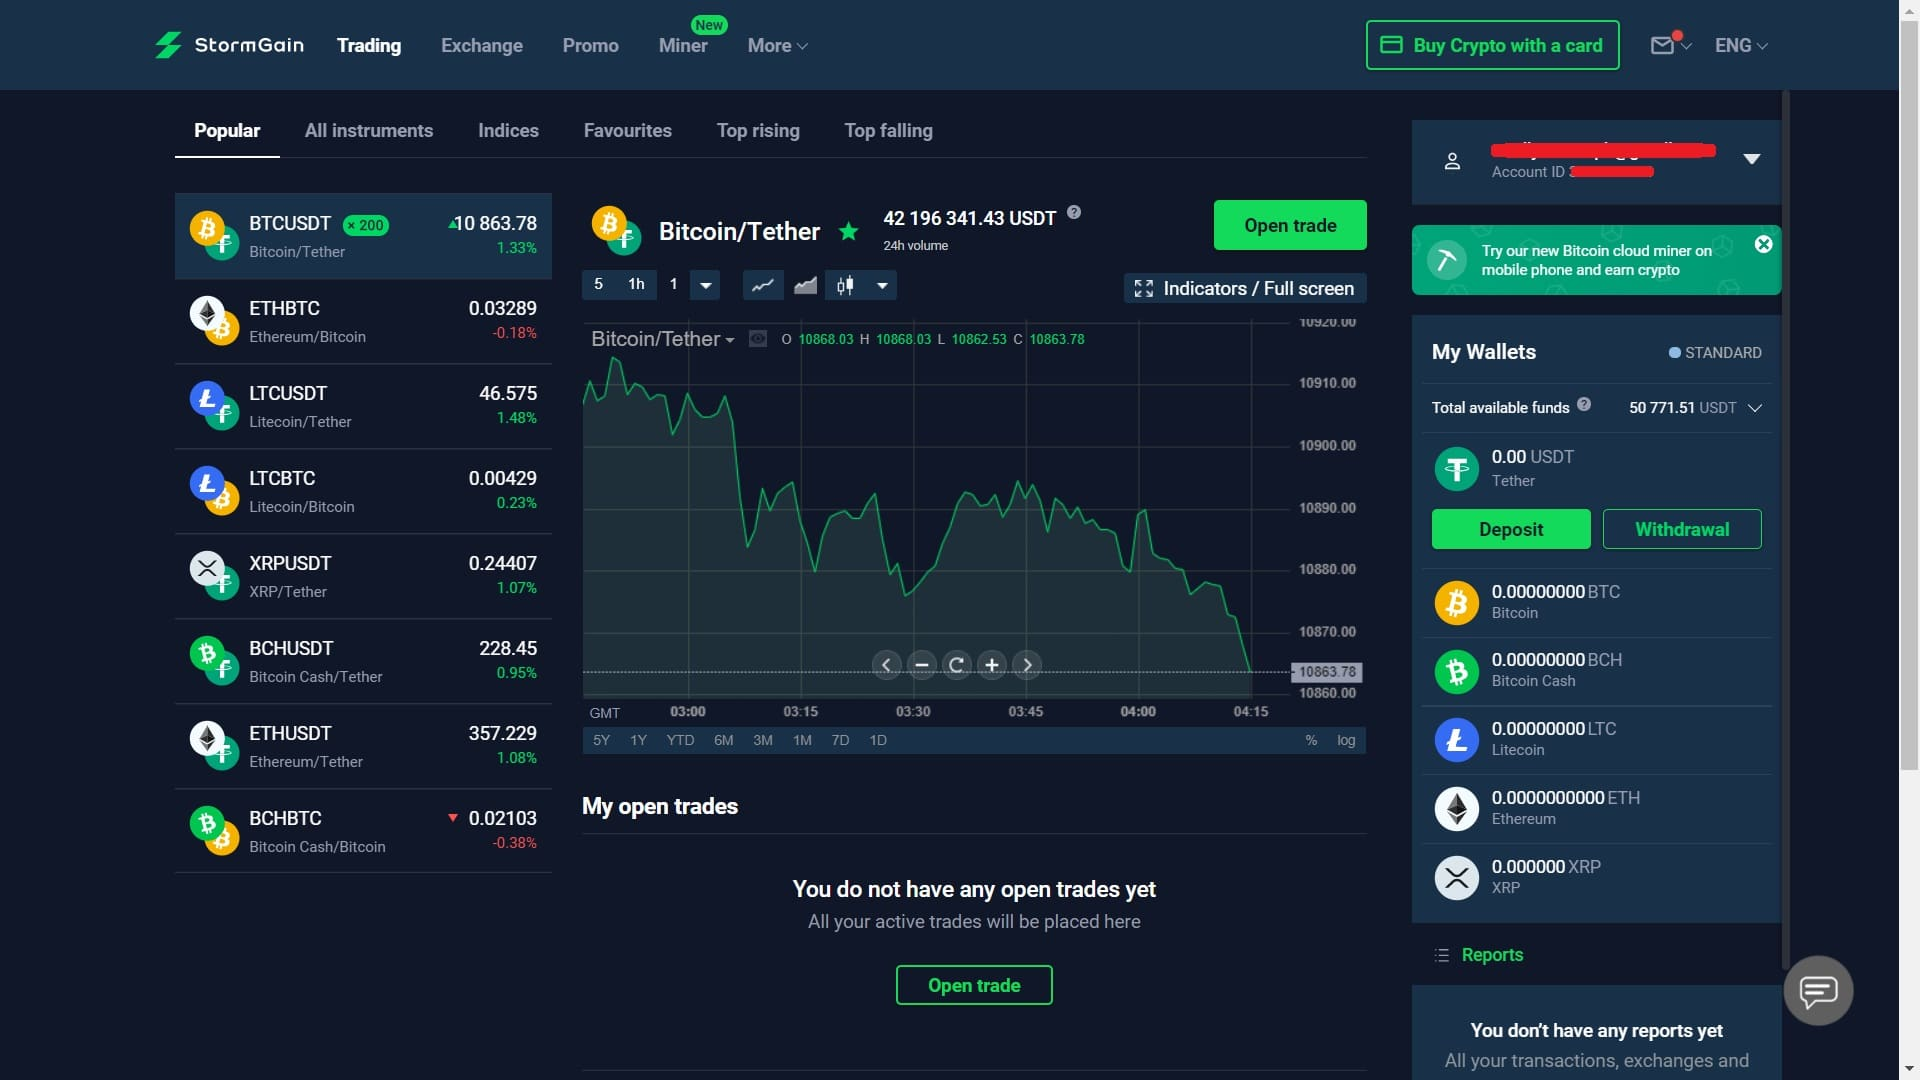 StormGain cryptocurrency trading platform